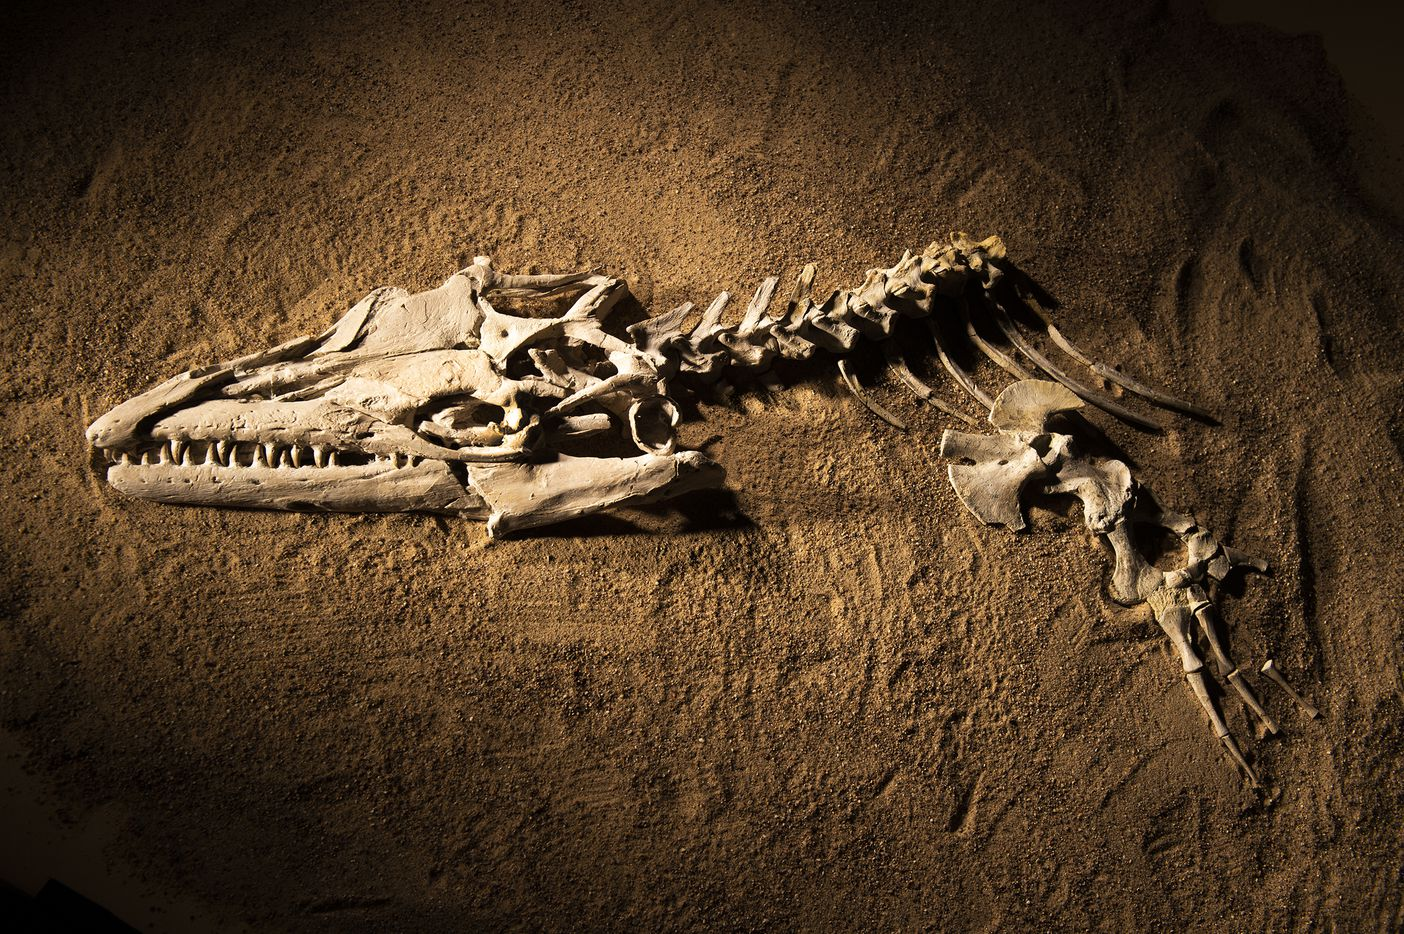 """The fossil skull and partial skeleton of mosasaur Angolasaurus bocagei excavated from Angola's coastal cliffs for display in """"Sea Monsters Unearthed."""" When the South Atlantic ocean basin was still young, a new deep-water connection between the Southern and Northern Hemispheres allowed giant marine reptiles from the north to move into Angola's coastal waters. Mosasaurs, drawn by the region's plentiful food, were among the first reptiles to prowl these waters. These giant lizards once dominated ocean ecosystems around the world, including along Angola's coast."""